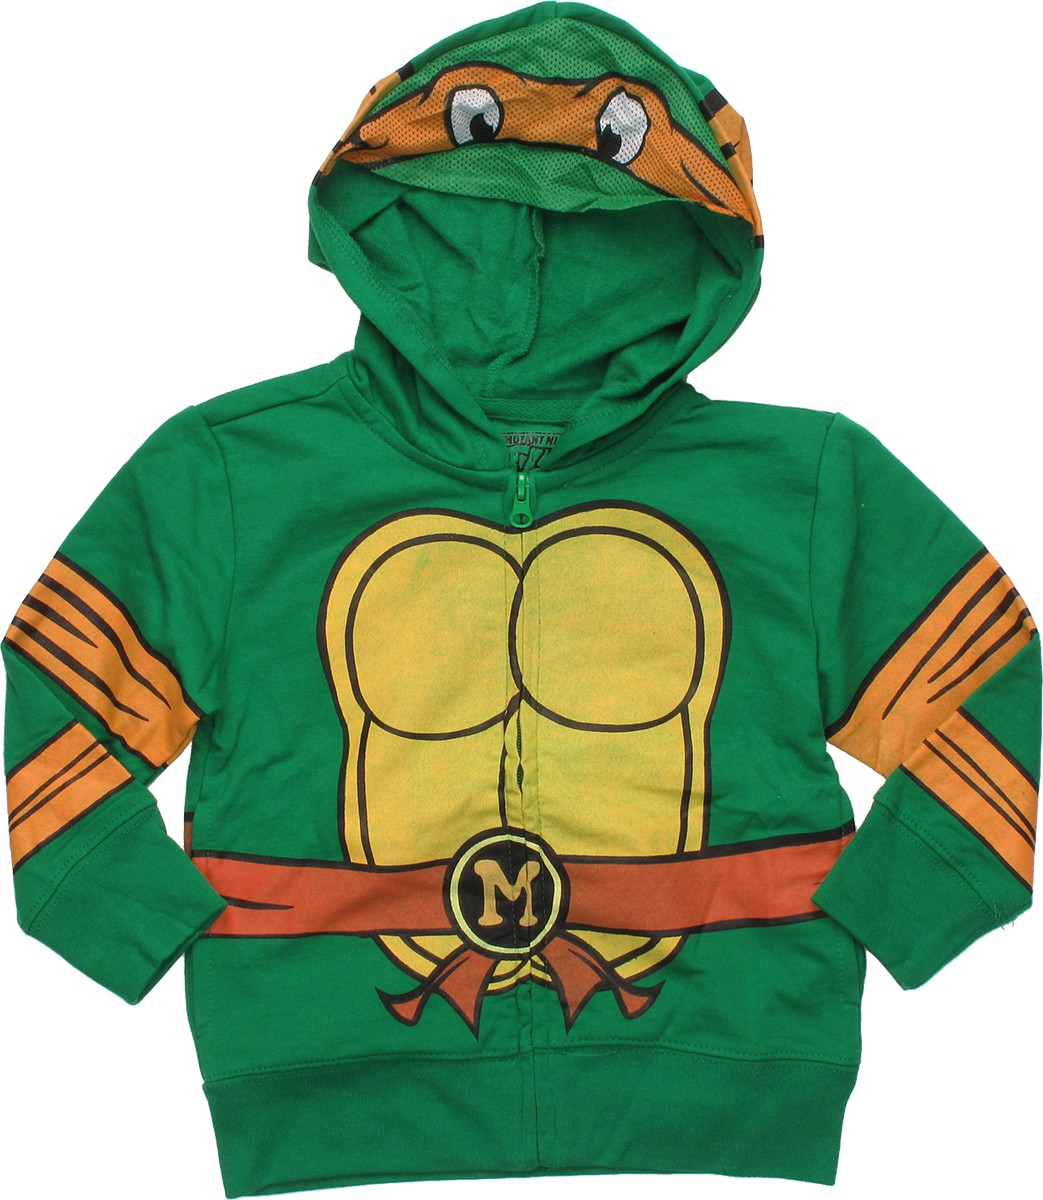 Ninja turtles hoodies